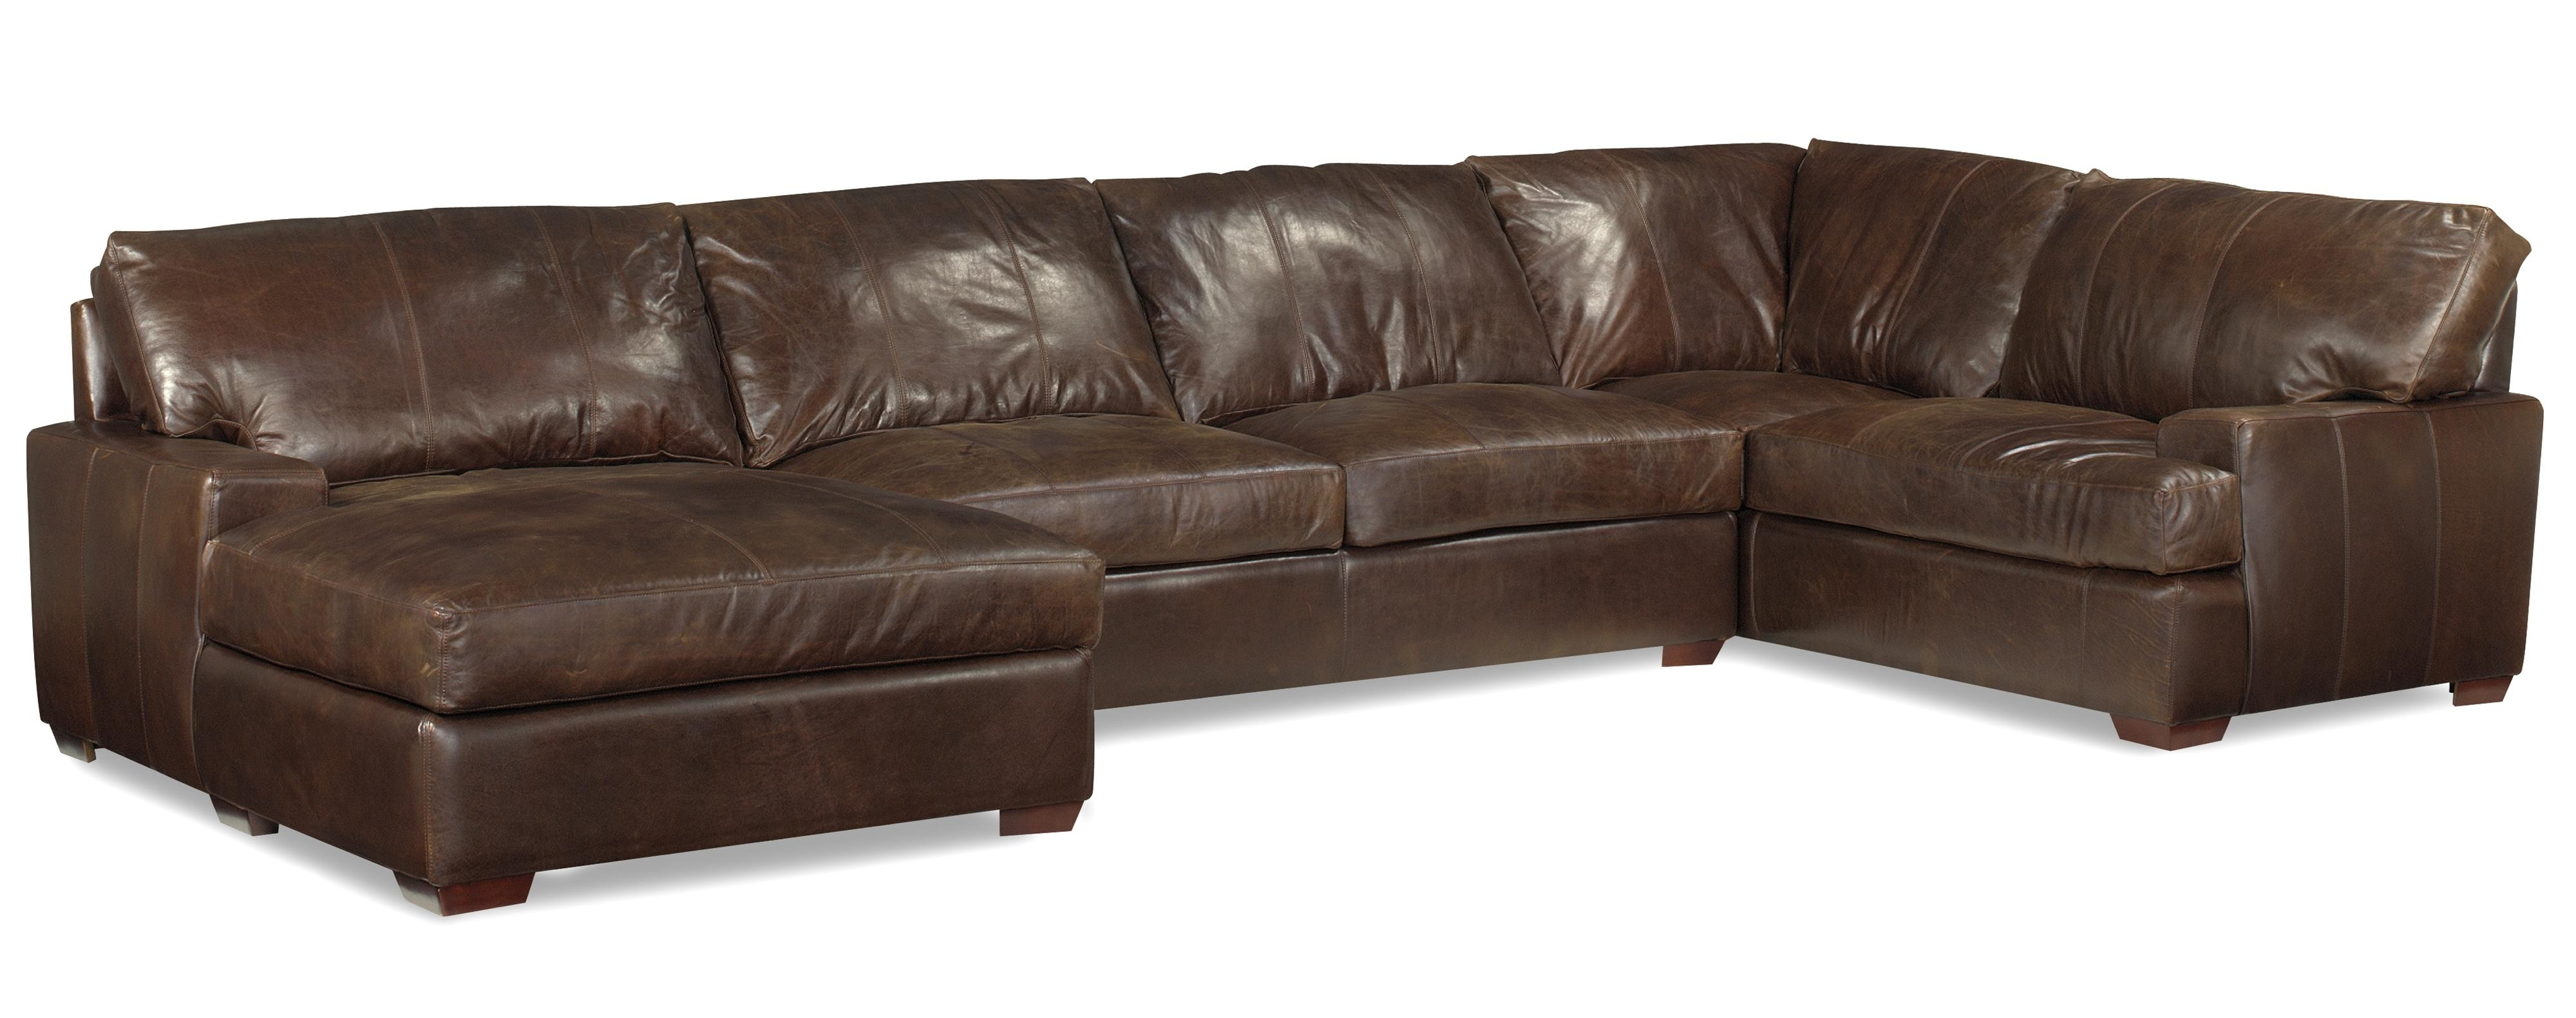 Favorite Leather Sectional Chaises Pertaining To Ikea Ektorp Sectional Loveseat Sectional With Chaise Sectionals (View 6 of 15)